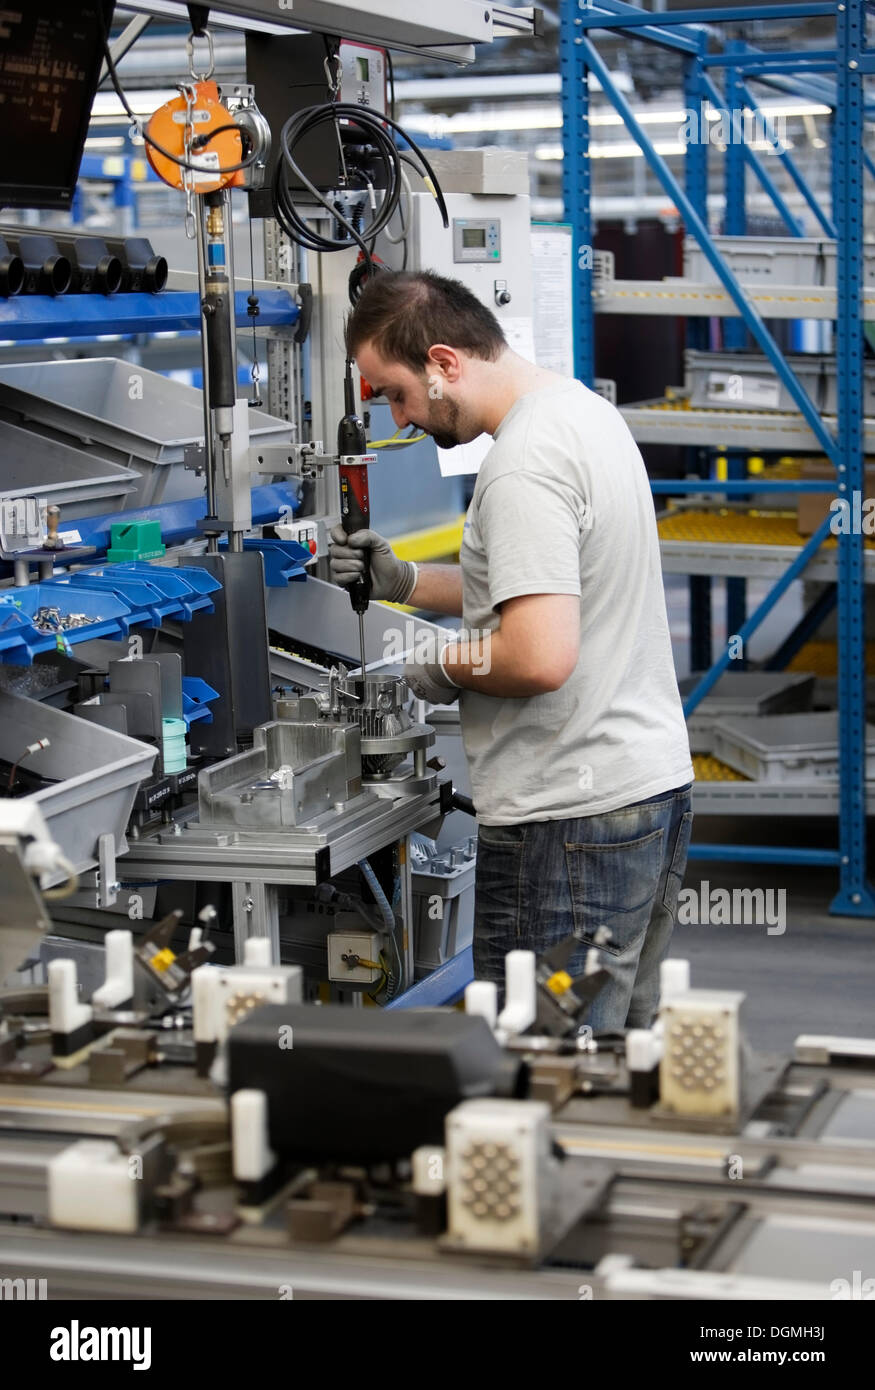 Production of vehicle pre-heaters at J. Eberspaecher GmbH & Co. KG, Esslingen, Baden-Wuerttemberg - Stock Image